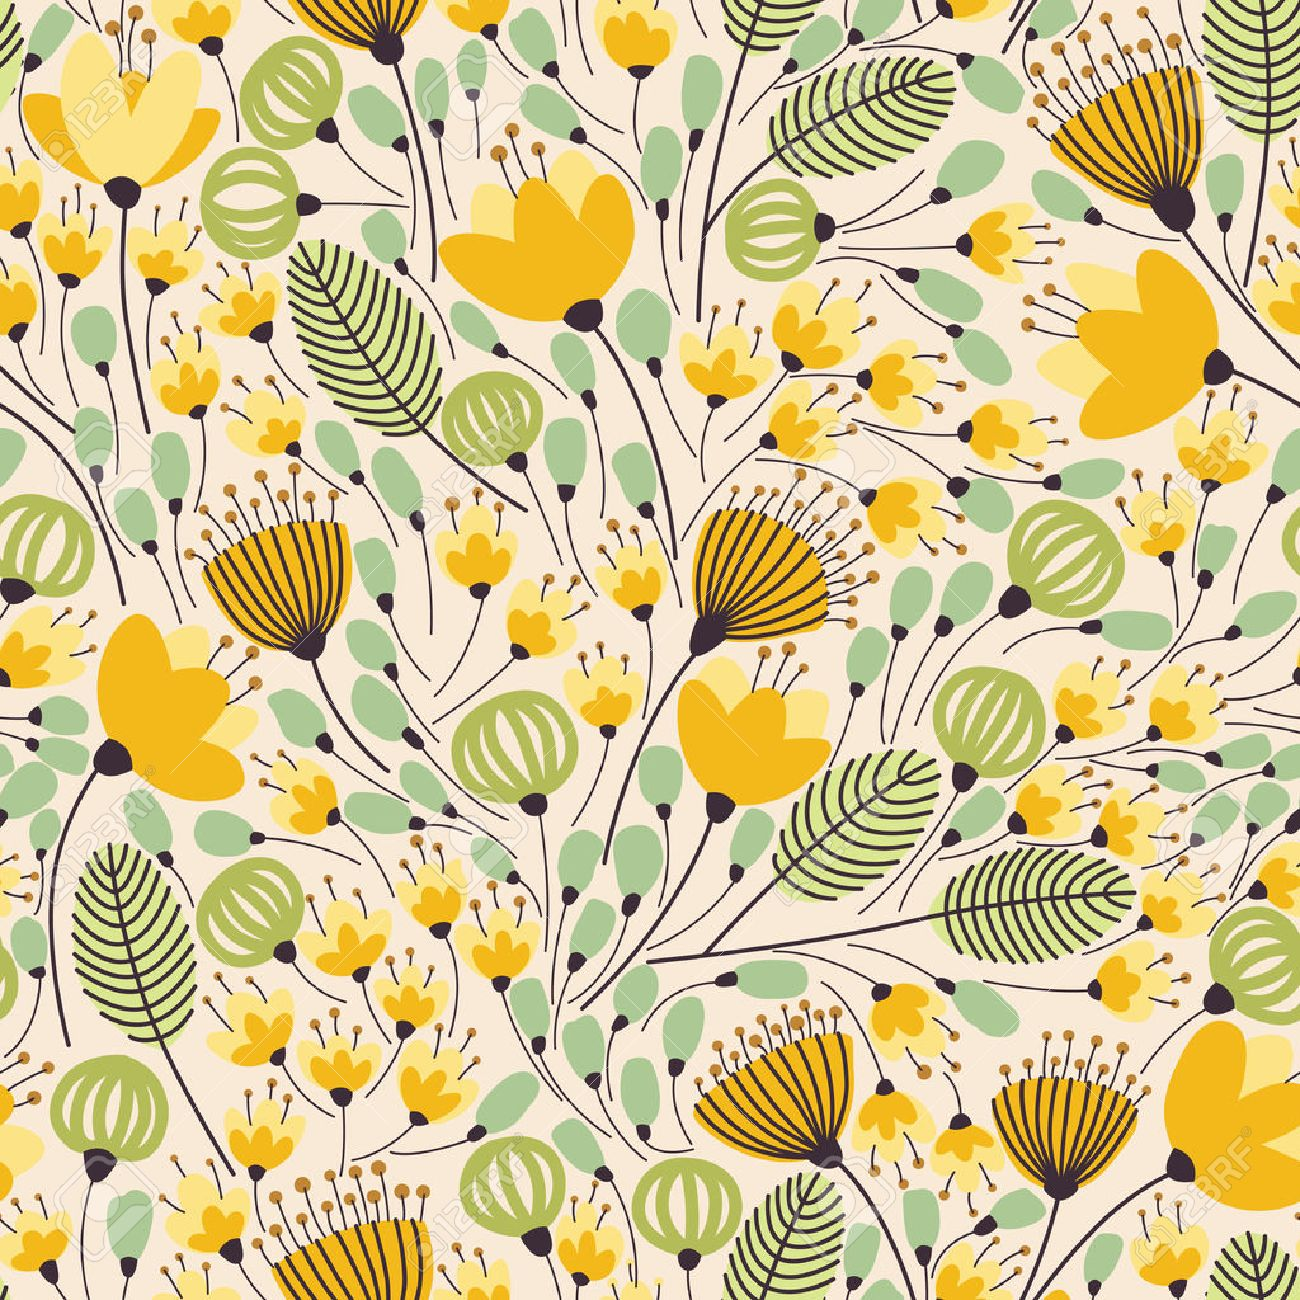 Elegant seamless pattern with flowers, vector illustration - 54807731